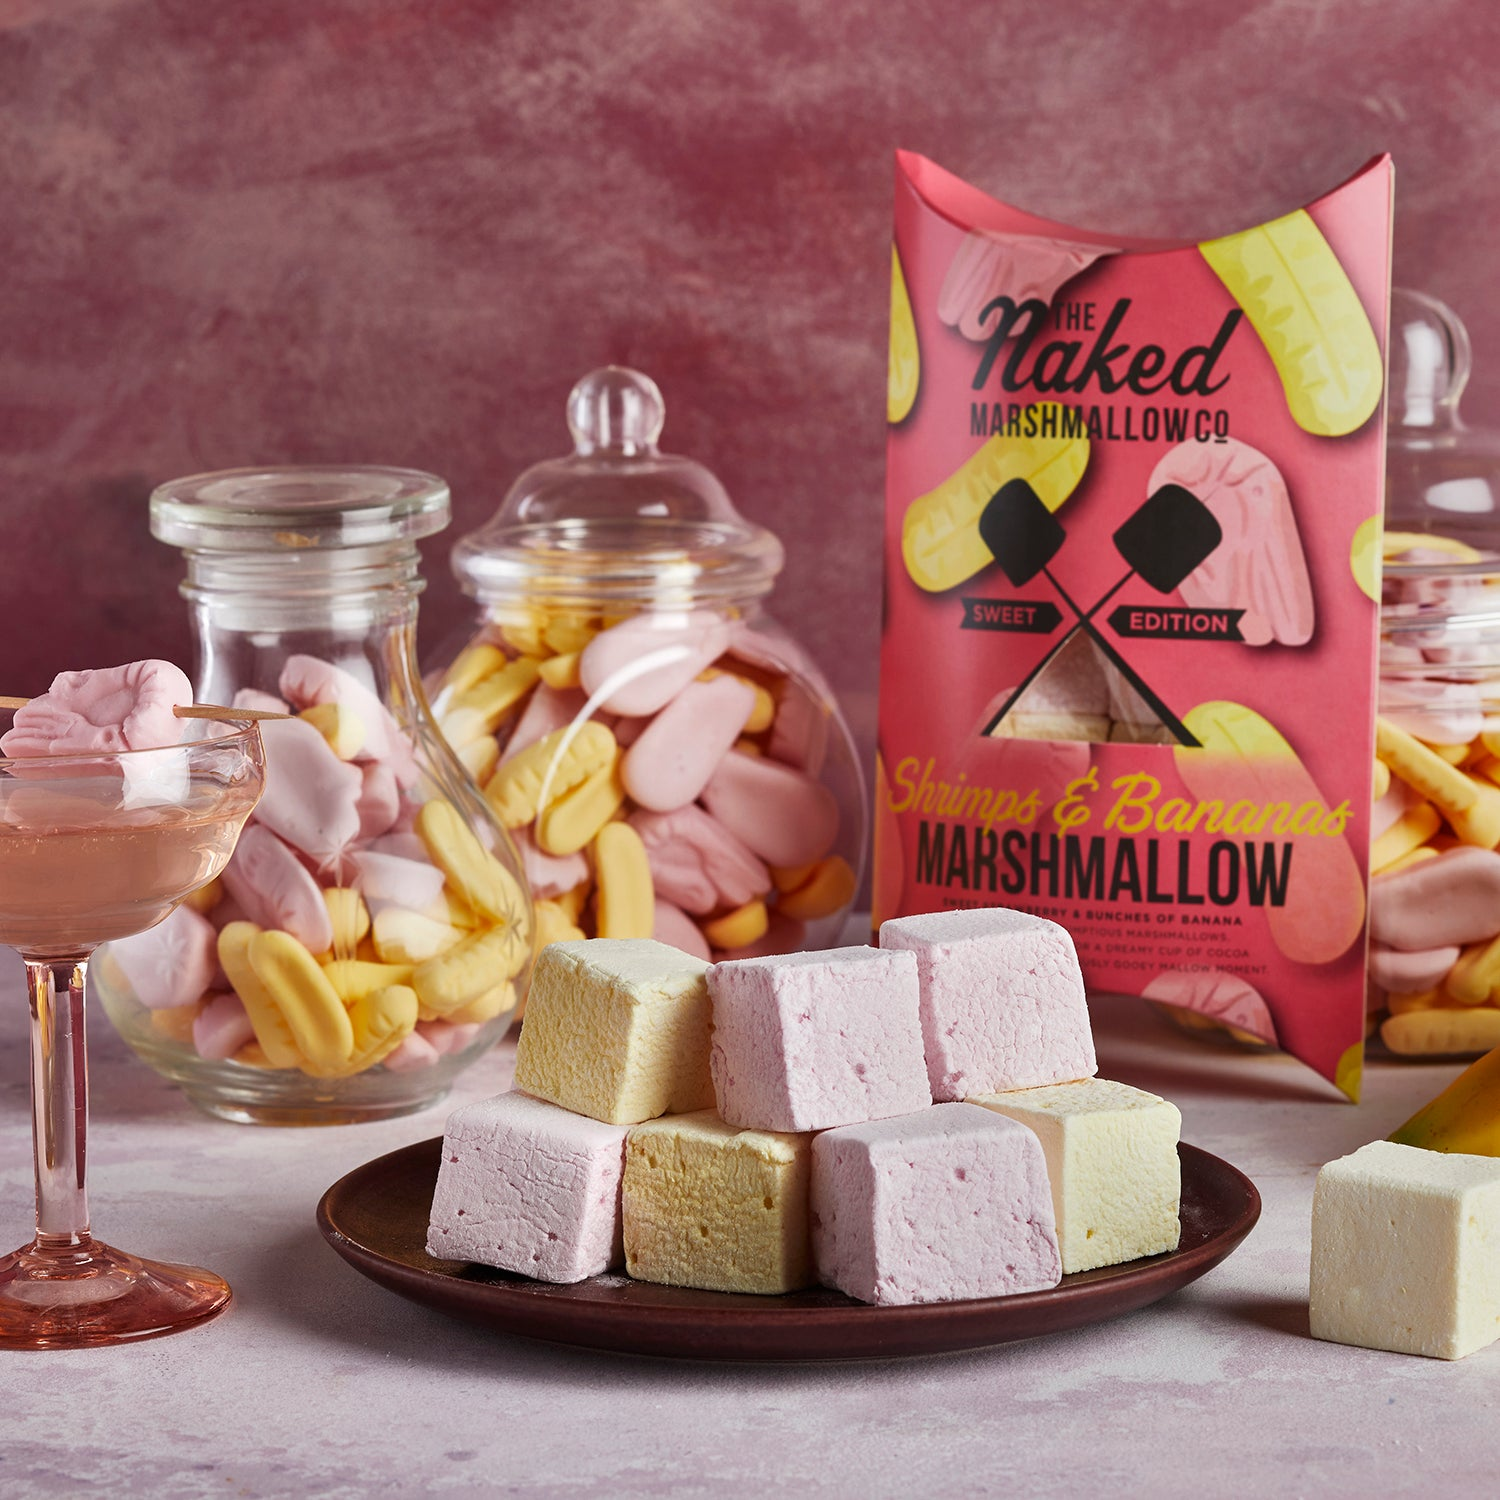 Shrimps & Bananas Gourmet Marshmallows